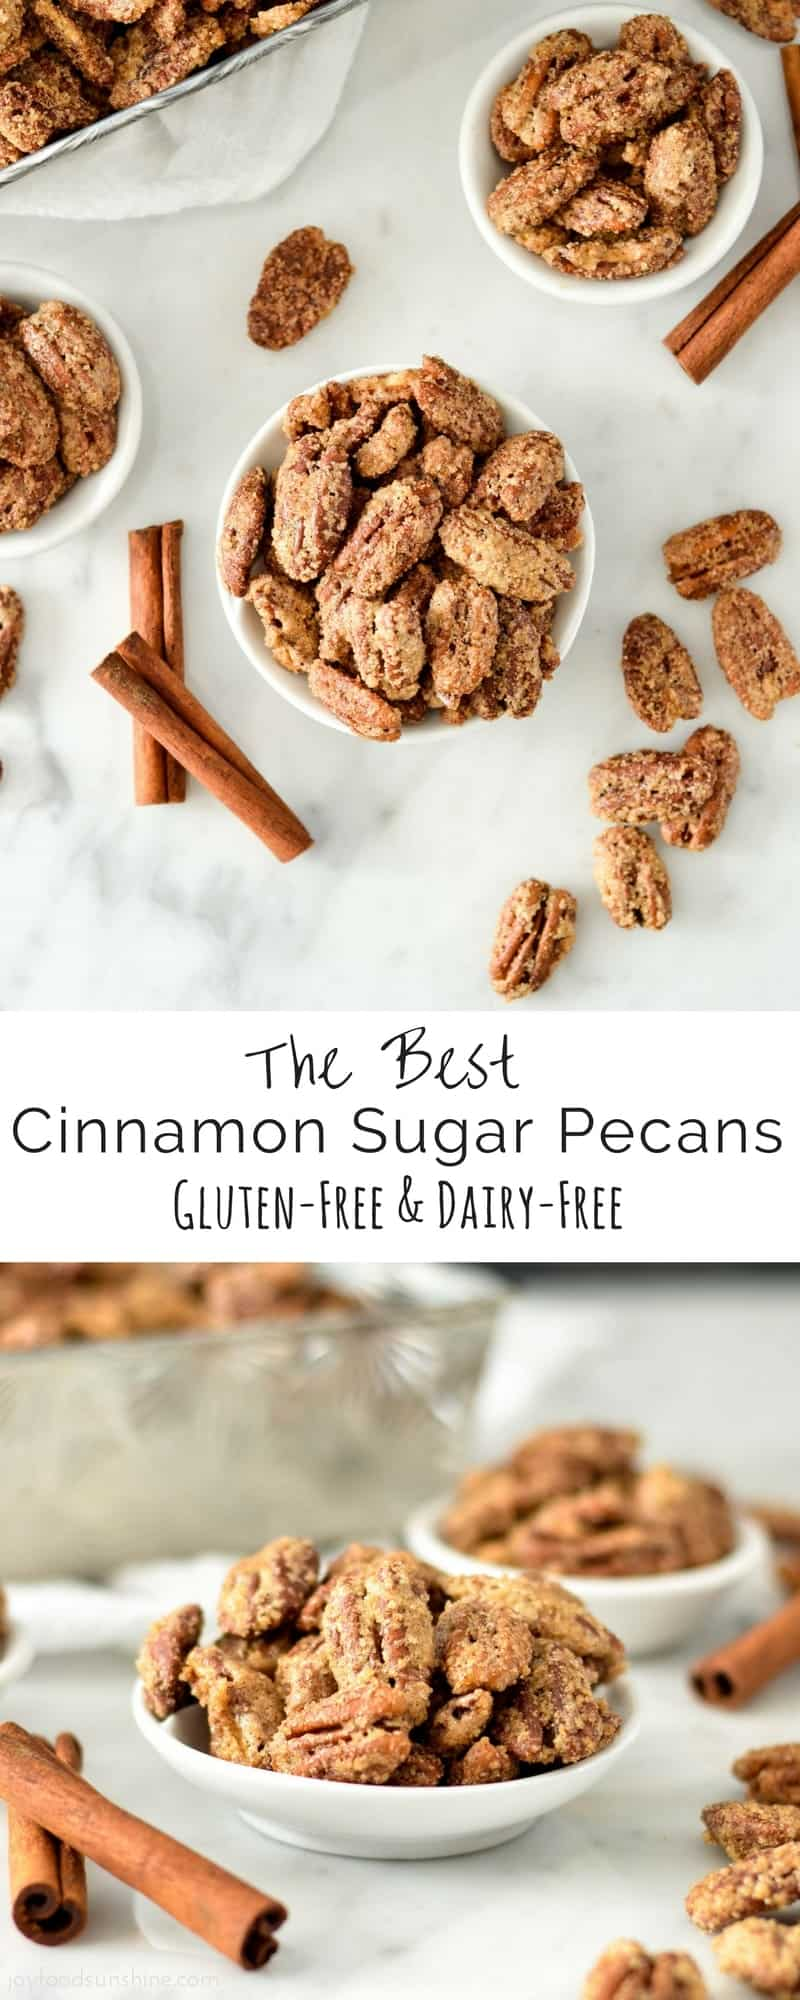 Cinnamon Sugar Pecans Recipe! Made with only 6 simple ingredients, these pecans are WAY better than mall cart nuts! Plus, they're gluten & dairy-free!